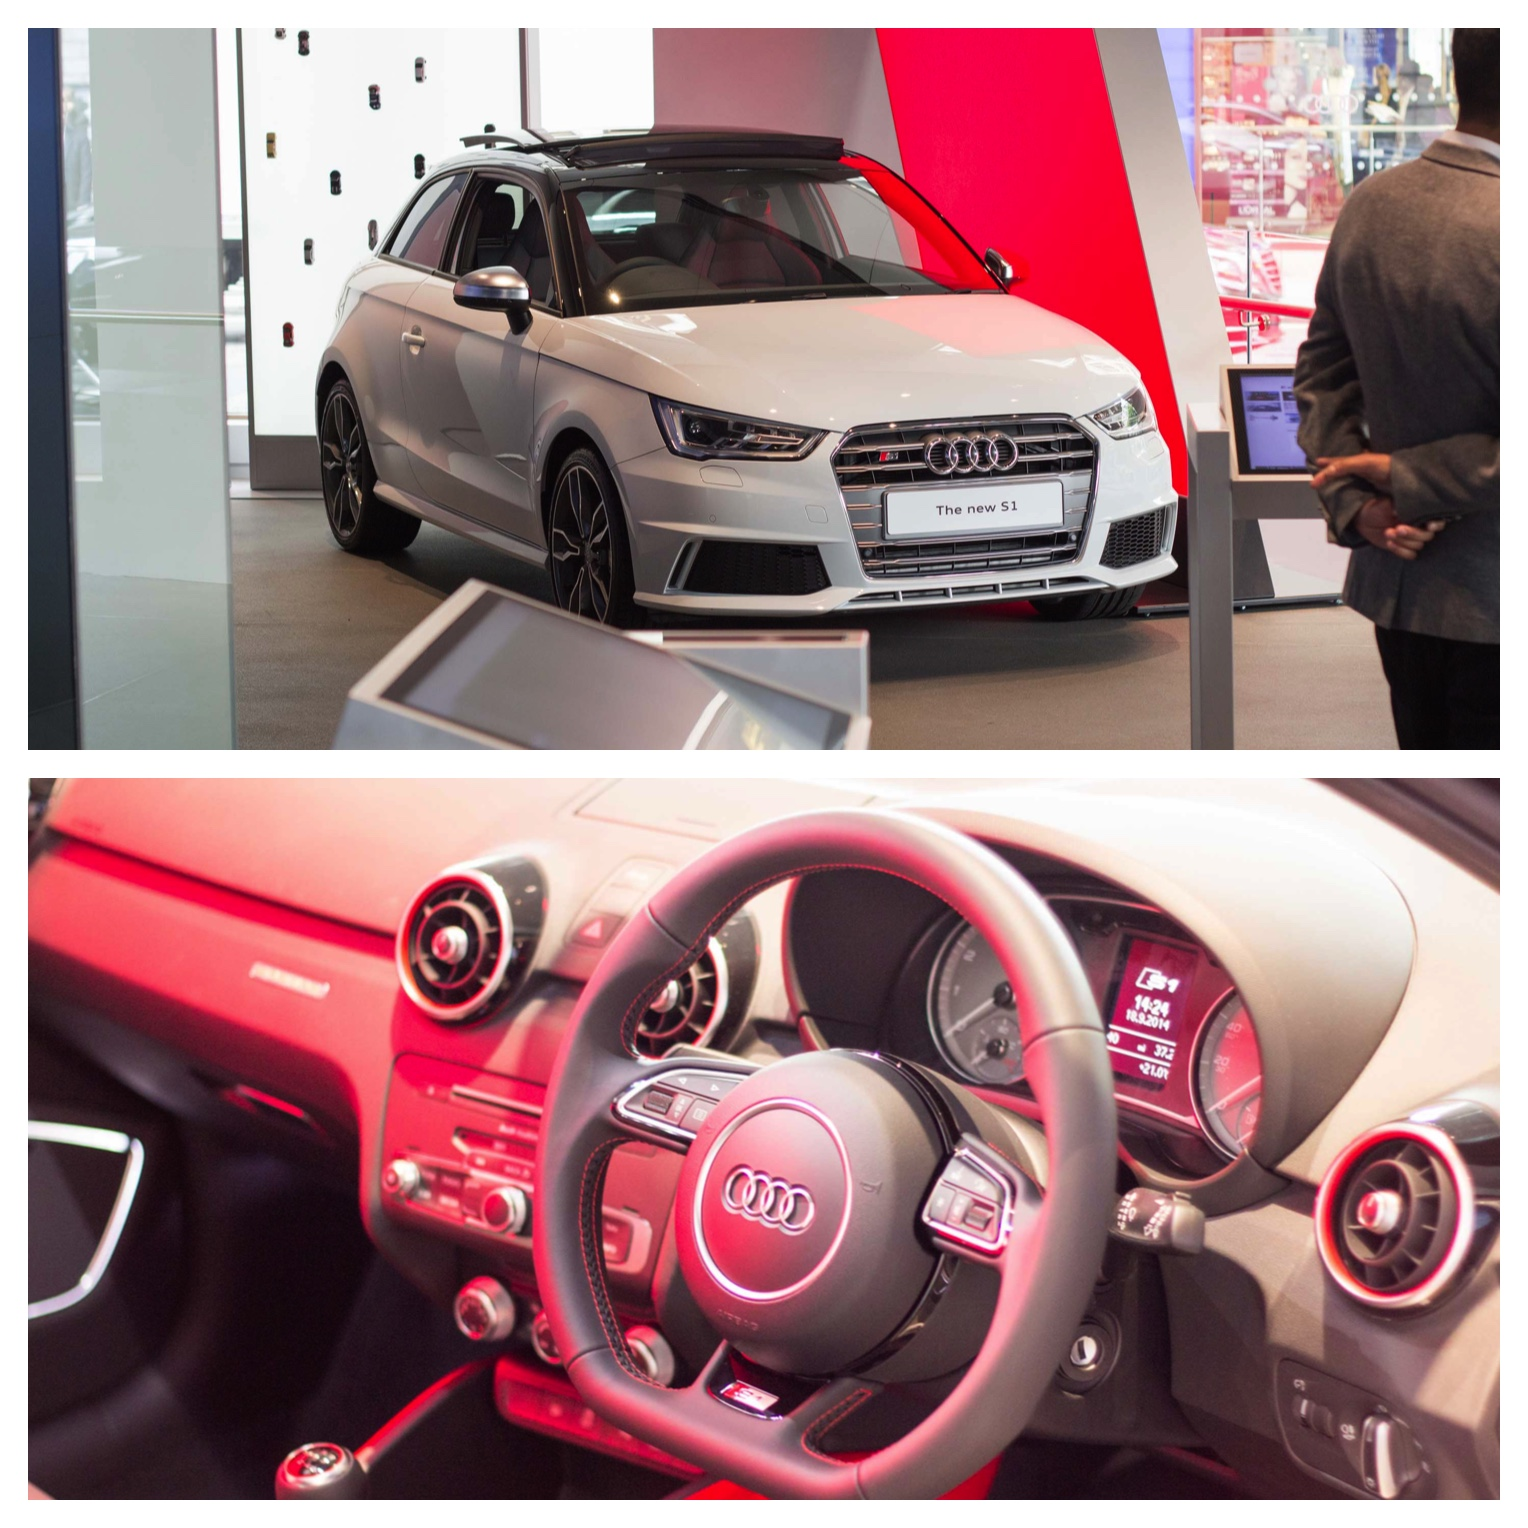 Audi S1 from London Mayfair Digital Showroom